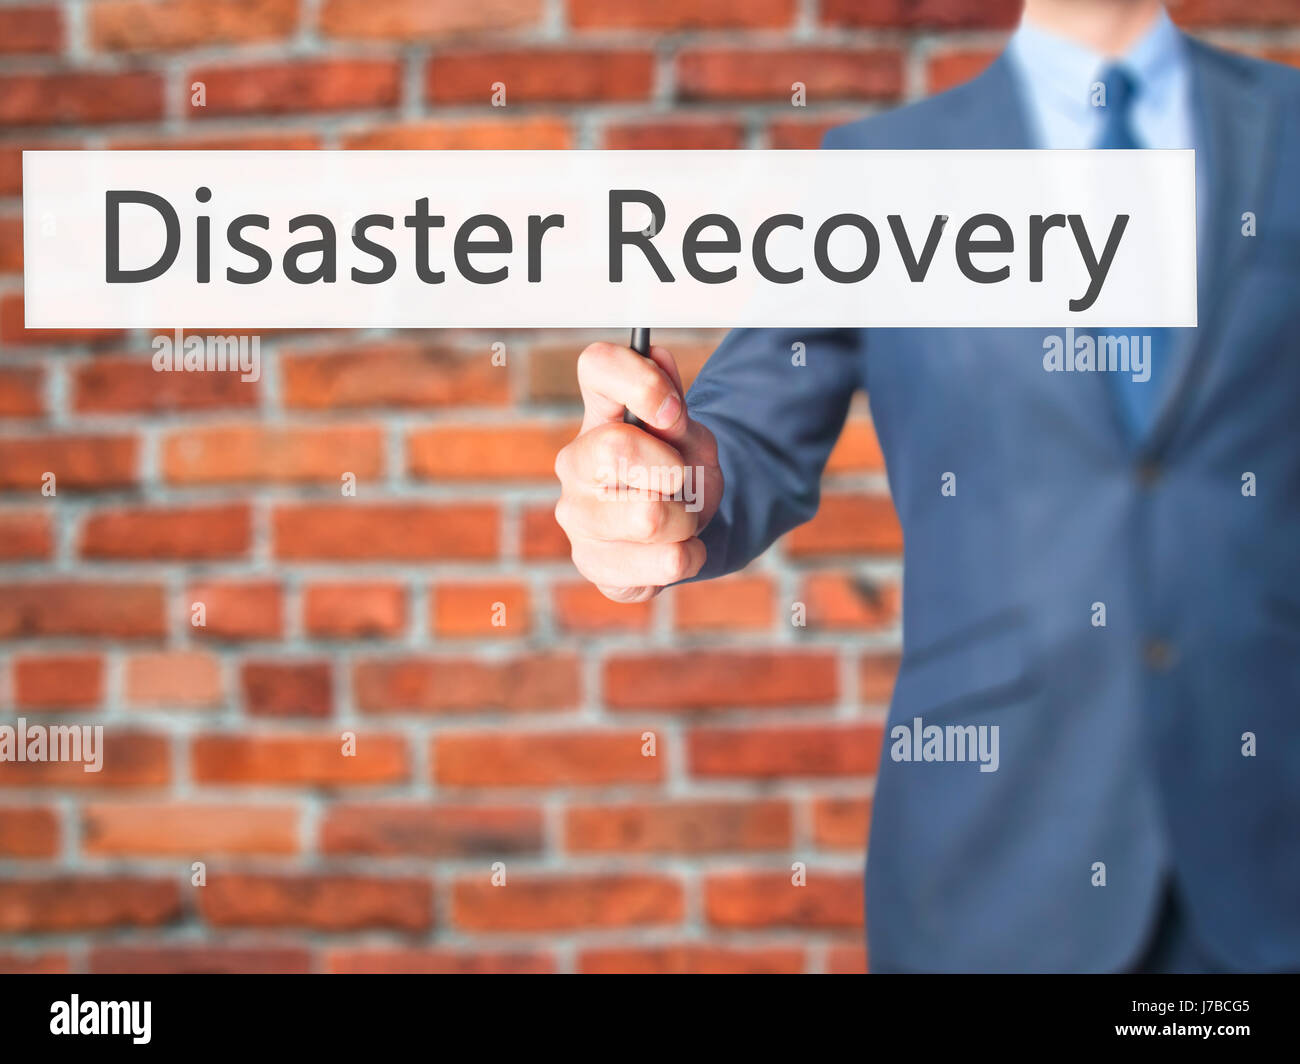 Disaster Recovery - Businessman hand holding sign. Business, technology, internet concept. Stock Photo - Stock Image